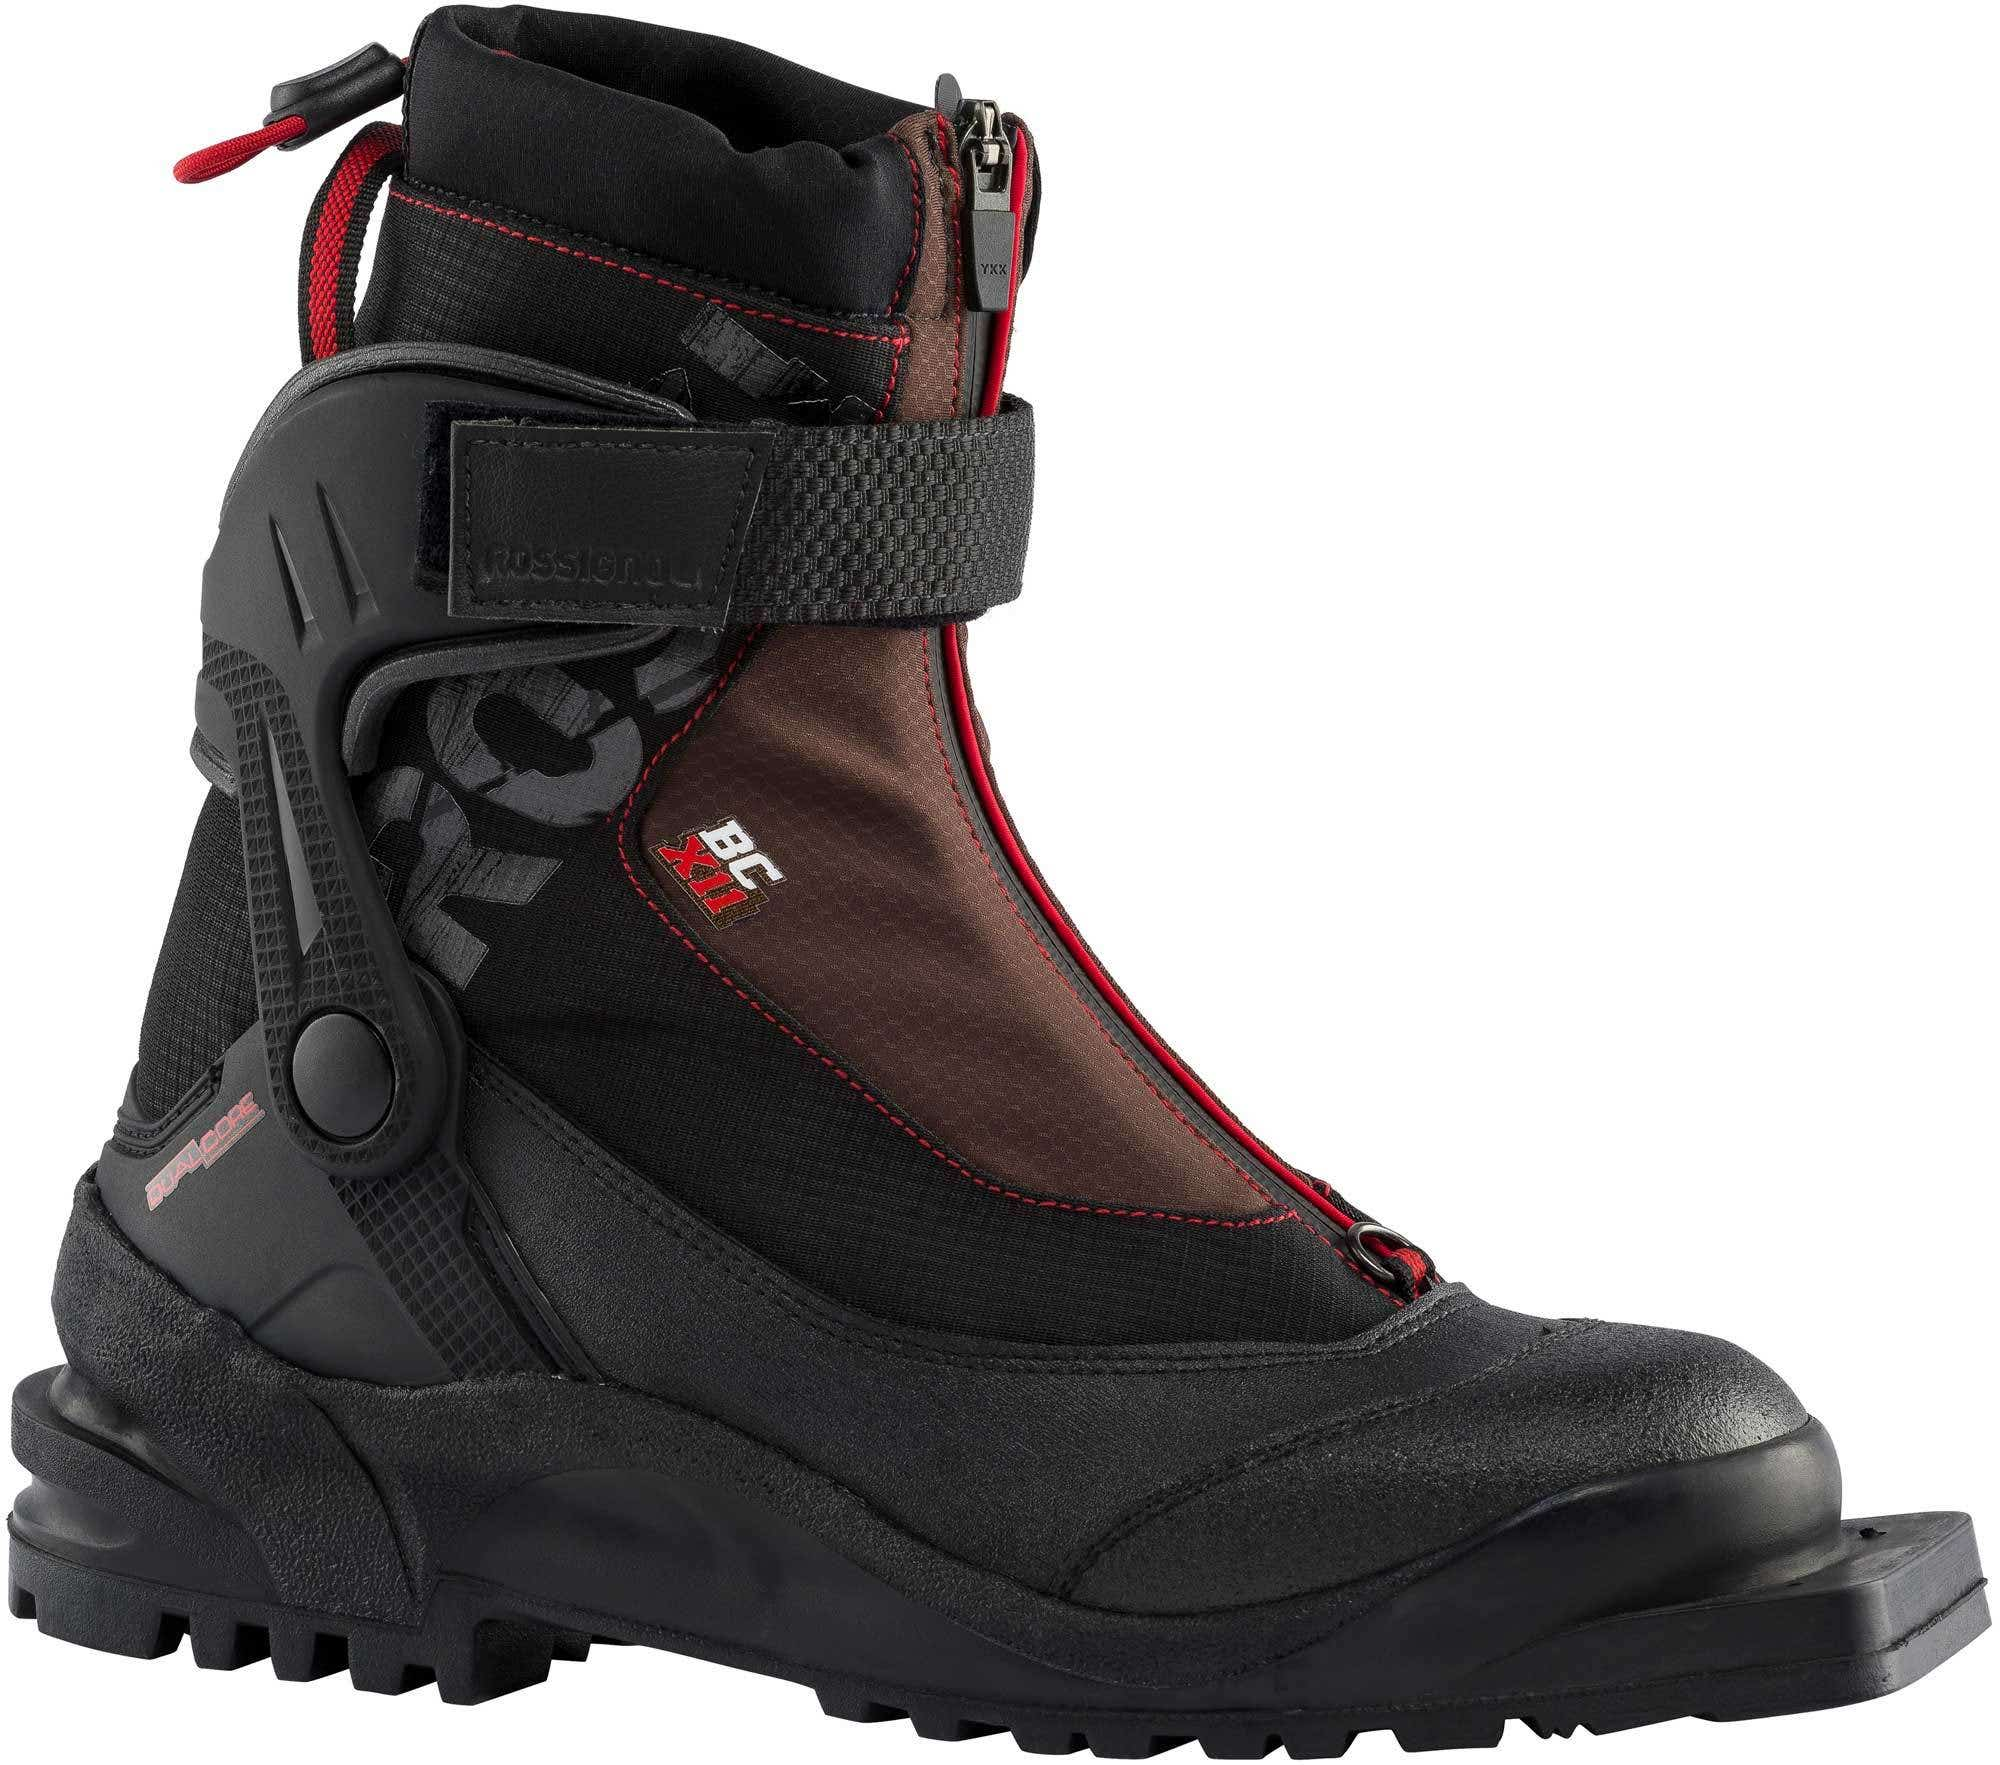 Image of Men's Backcountry Nordic Boots Bc X 11 75Mm